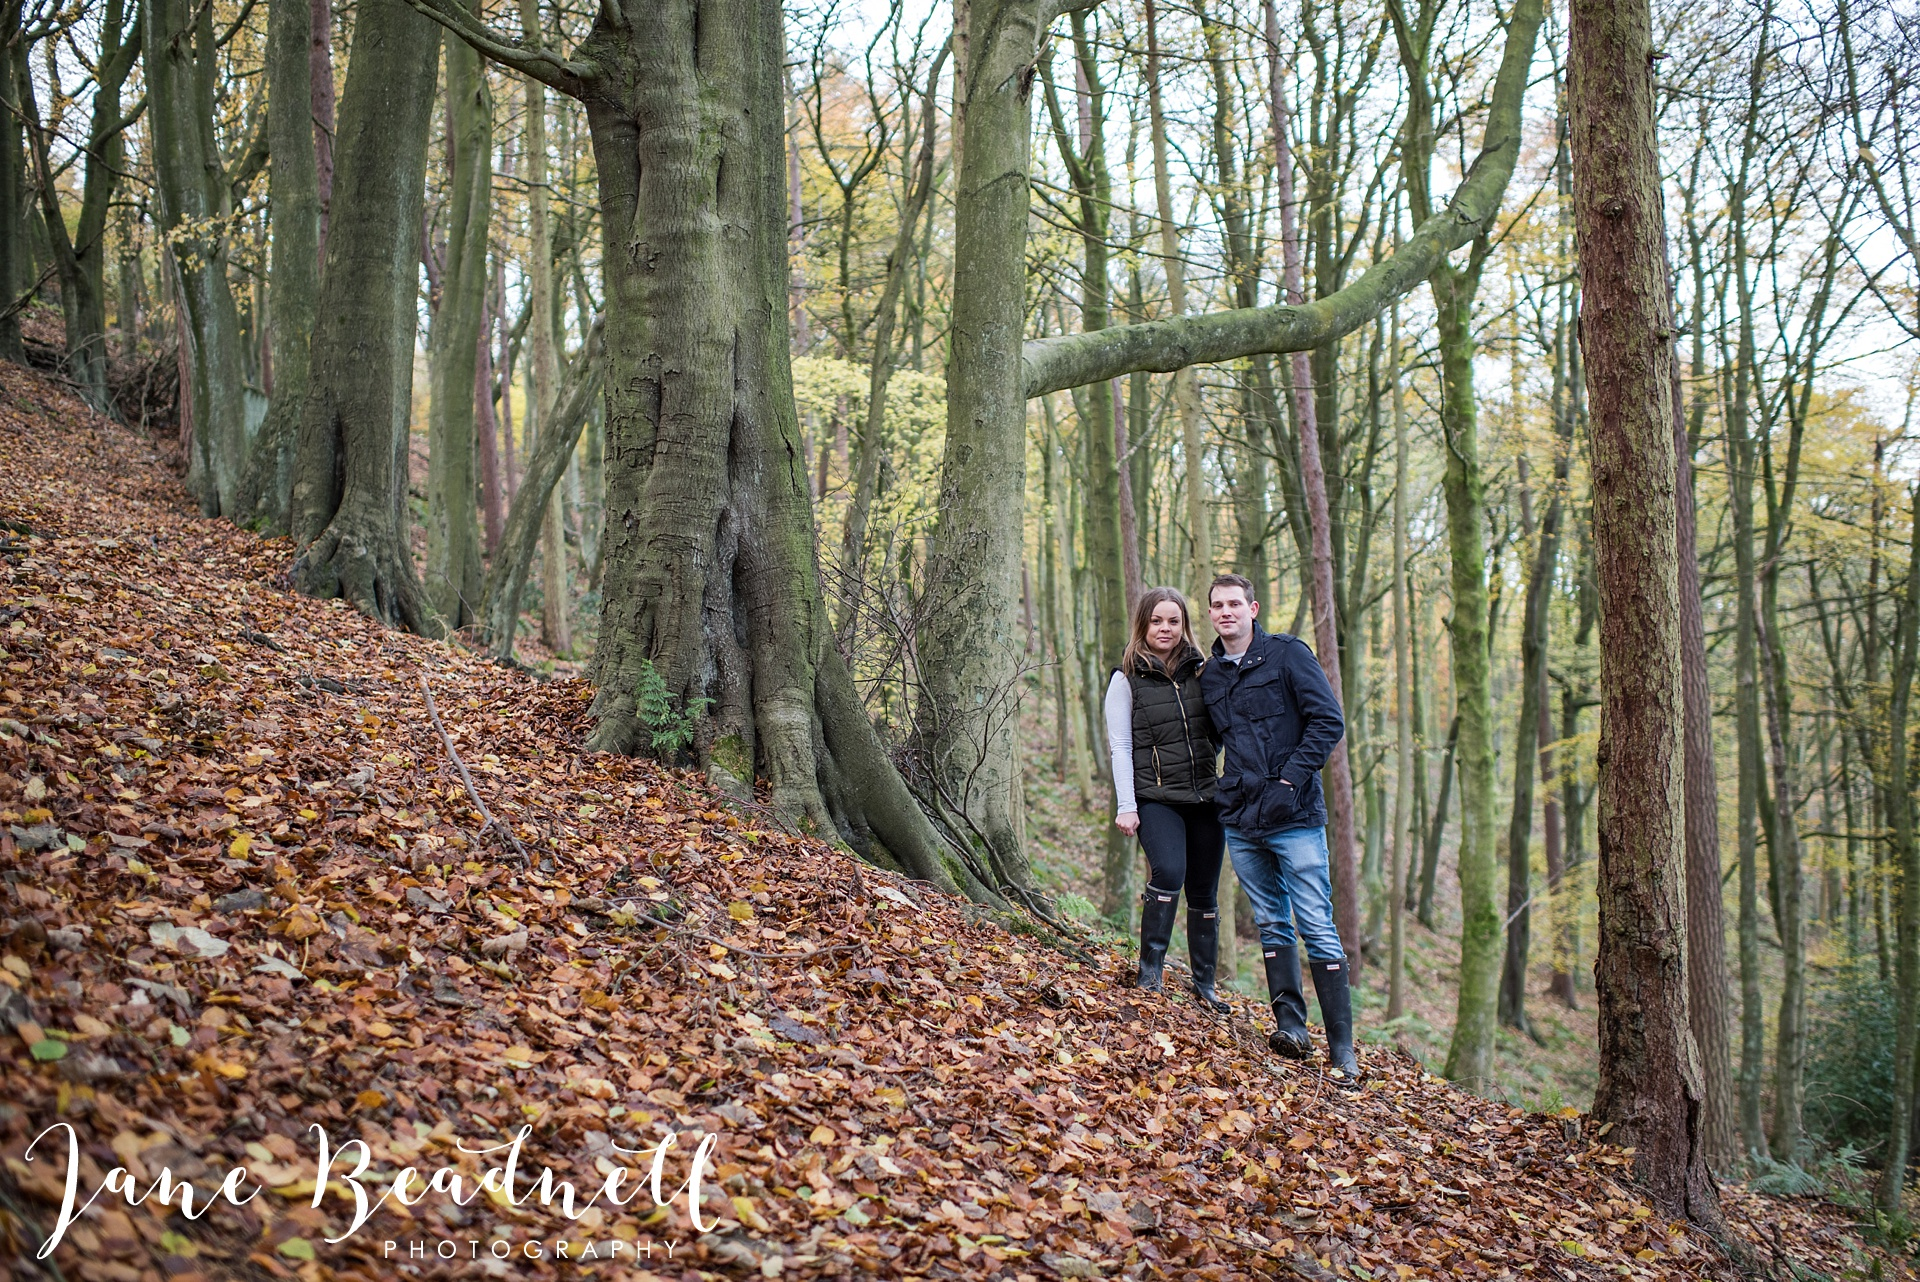 engagement-shoot-yorkshire-wedding-photographer-jane-beadnell-photography-uk-and-destination-wedding-photographer-engagement-shoot_0033